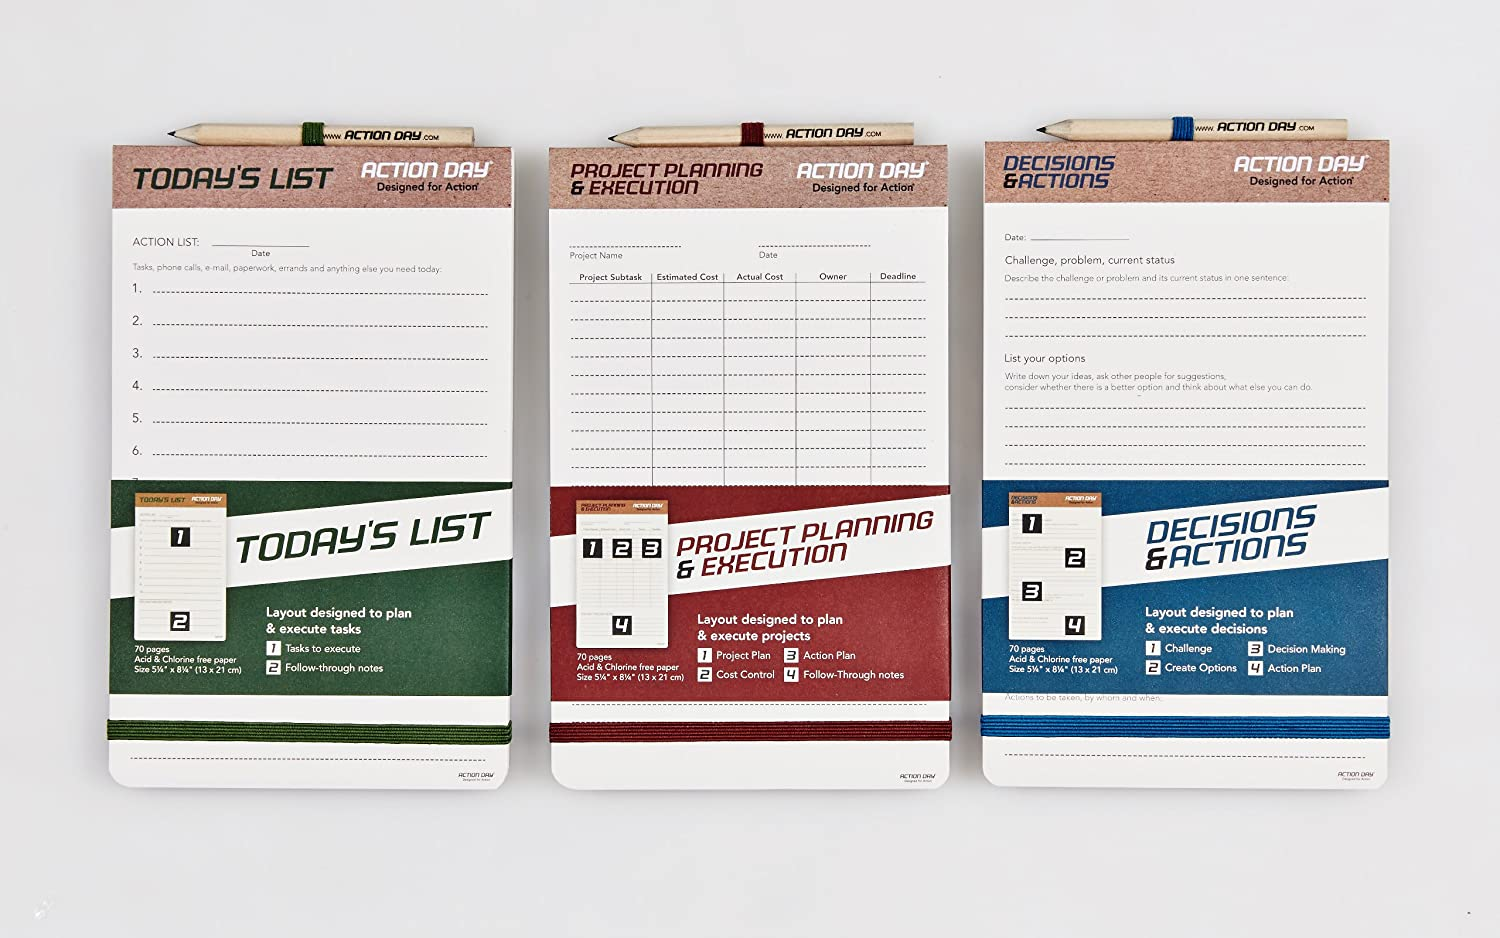 Decisions /& Actions Pad Action Day Size 5x8 Planning Pad Layout Designed to Plan /& Execute Decisions